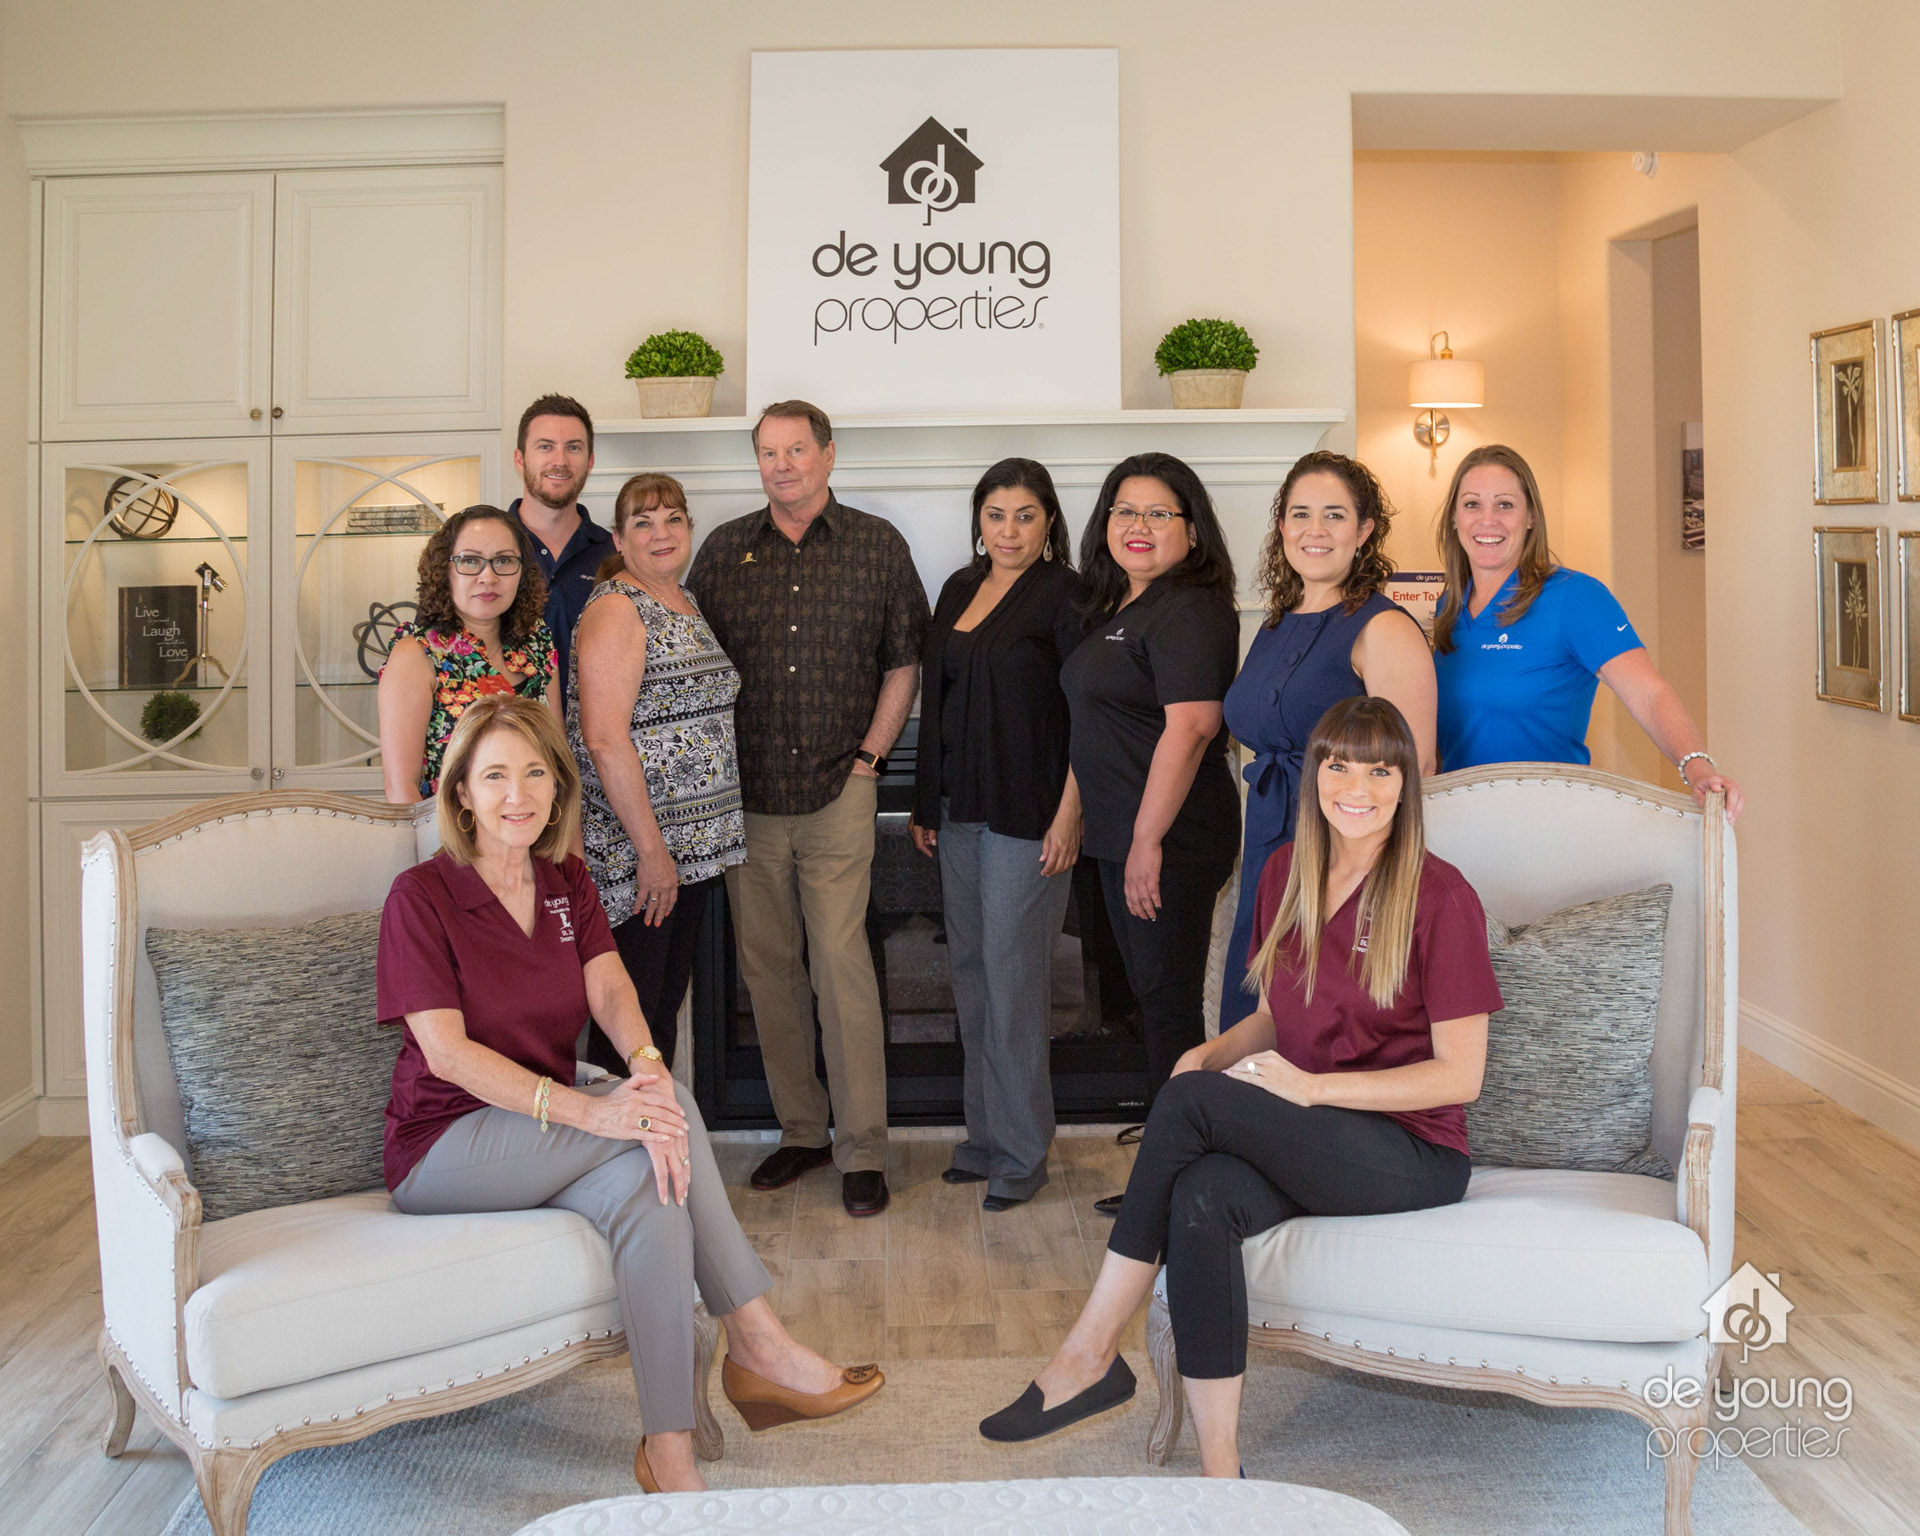 DeYoung Properties Would Appreciate Your Support! Voting Has Started!